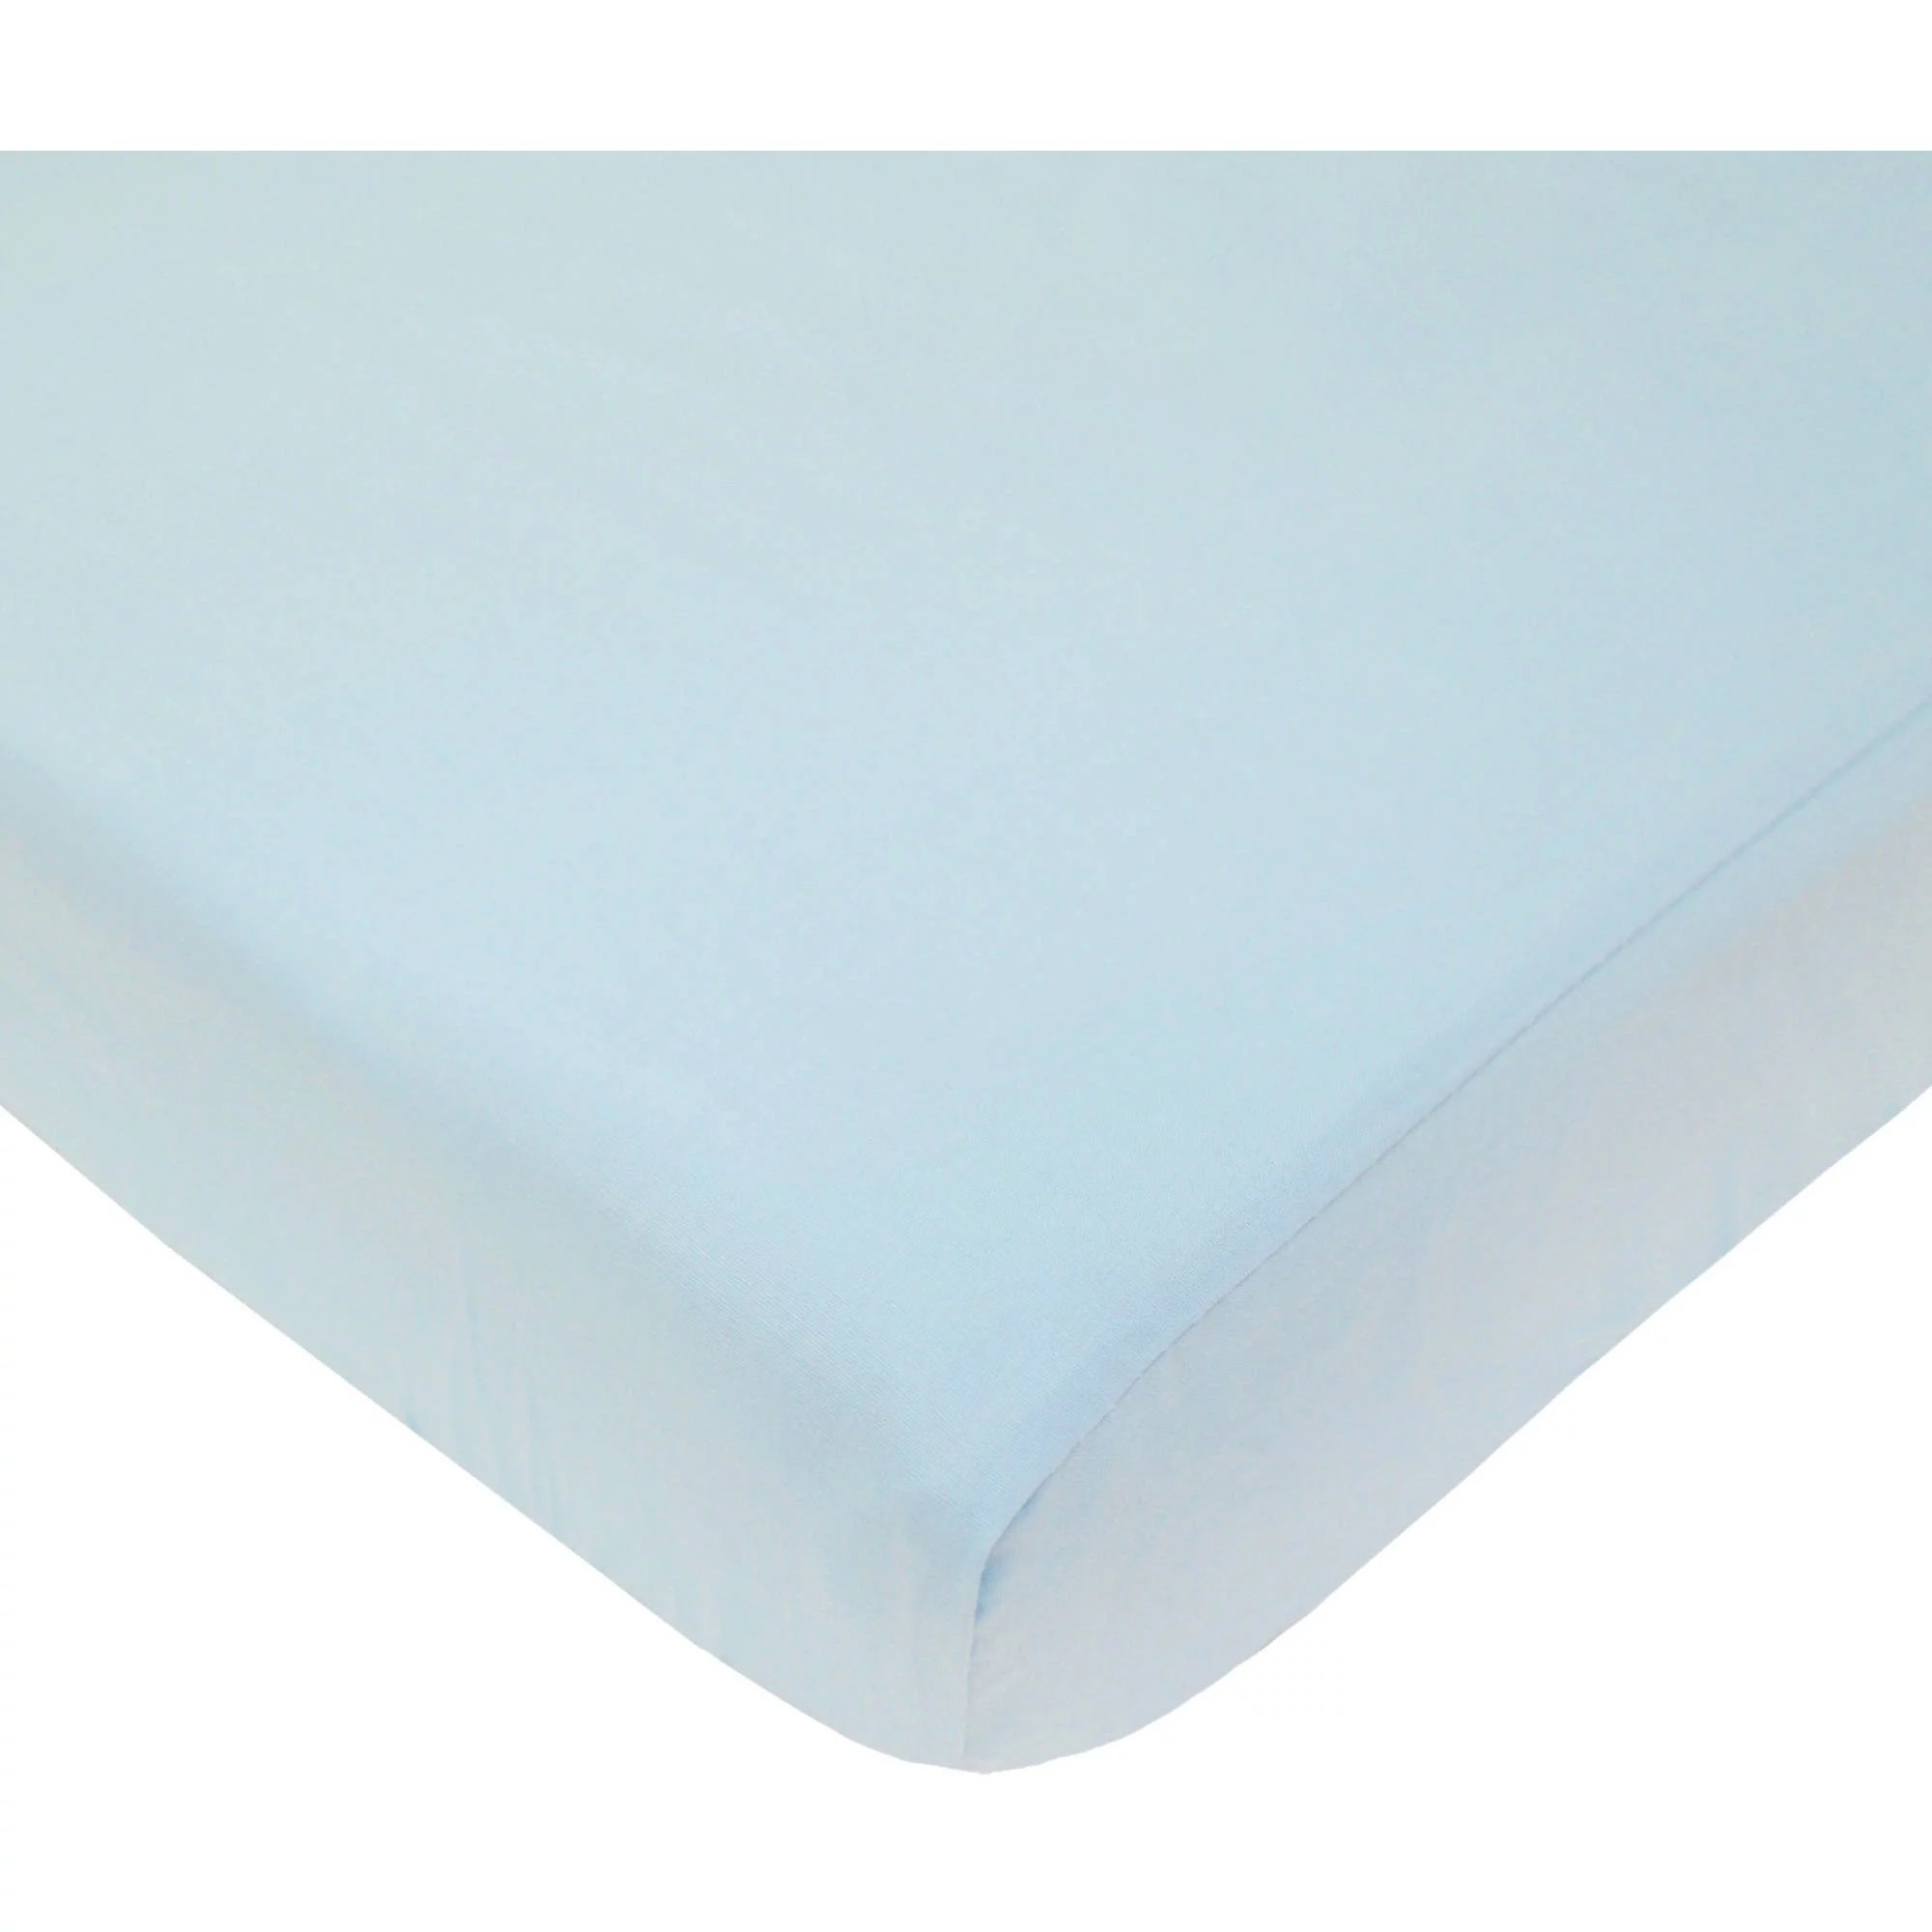 American Baby Co. Percale Cotton Fitted Portable/MiniCrib Sheet, Blue